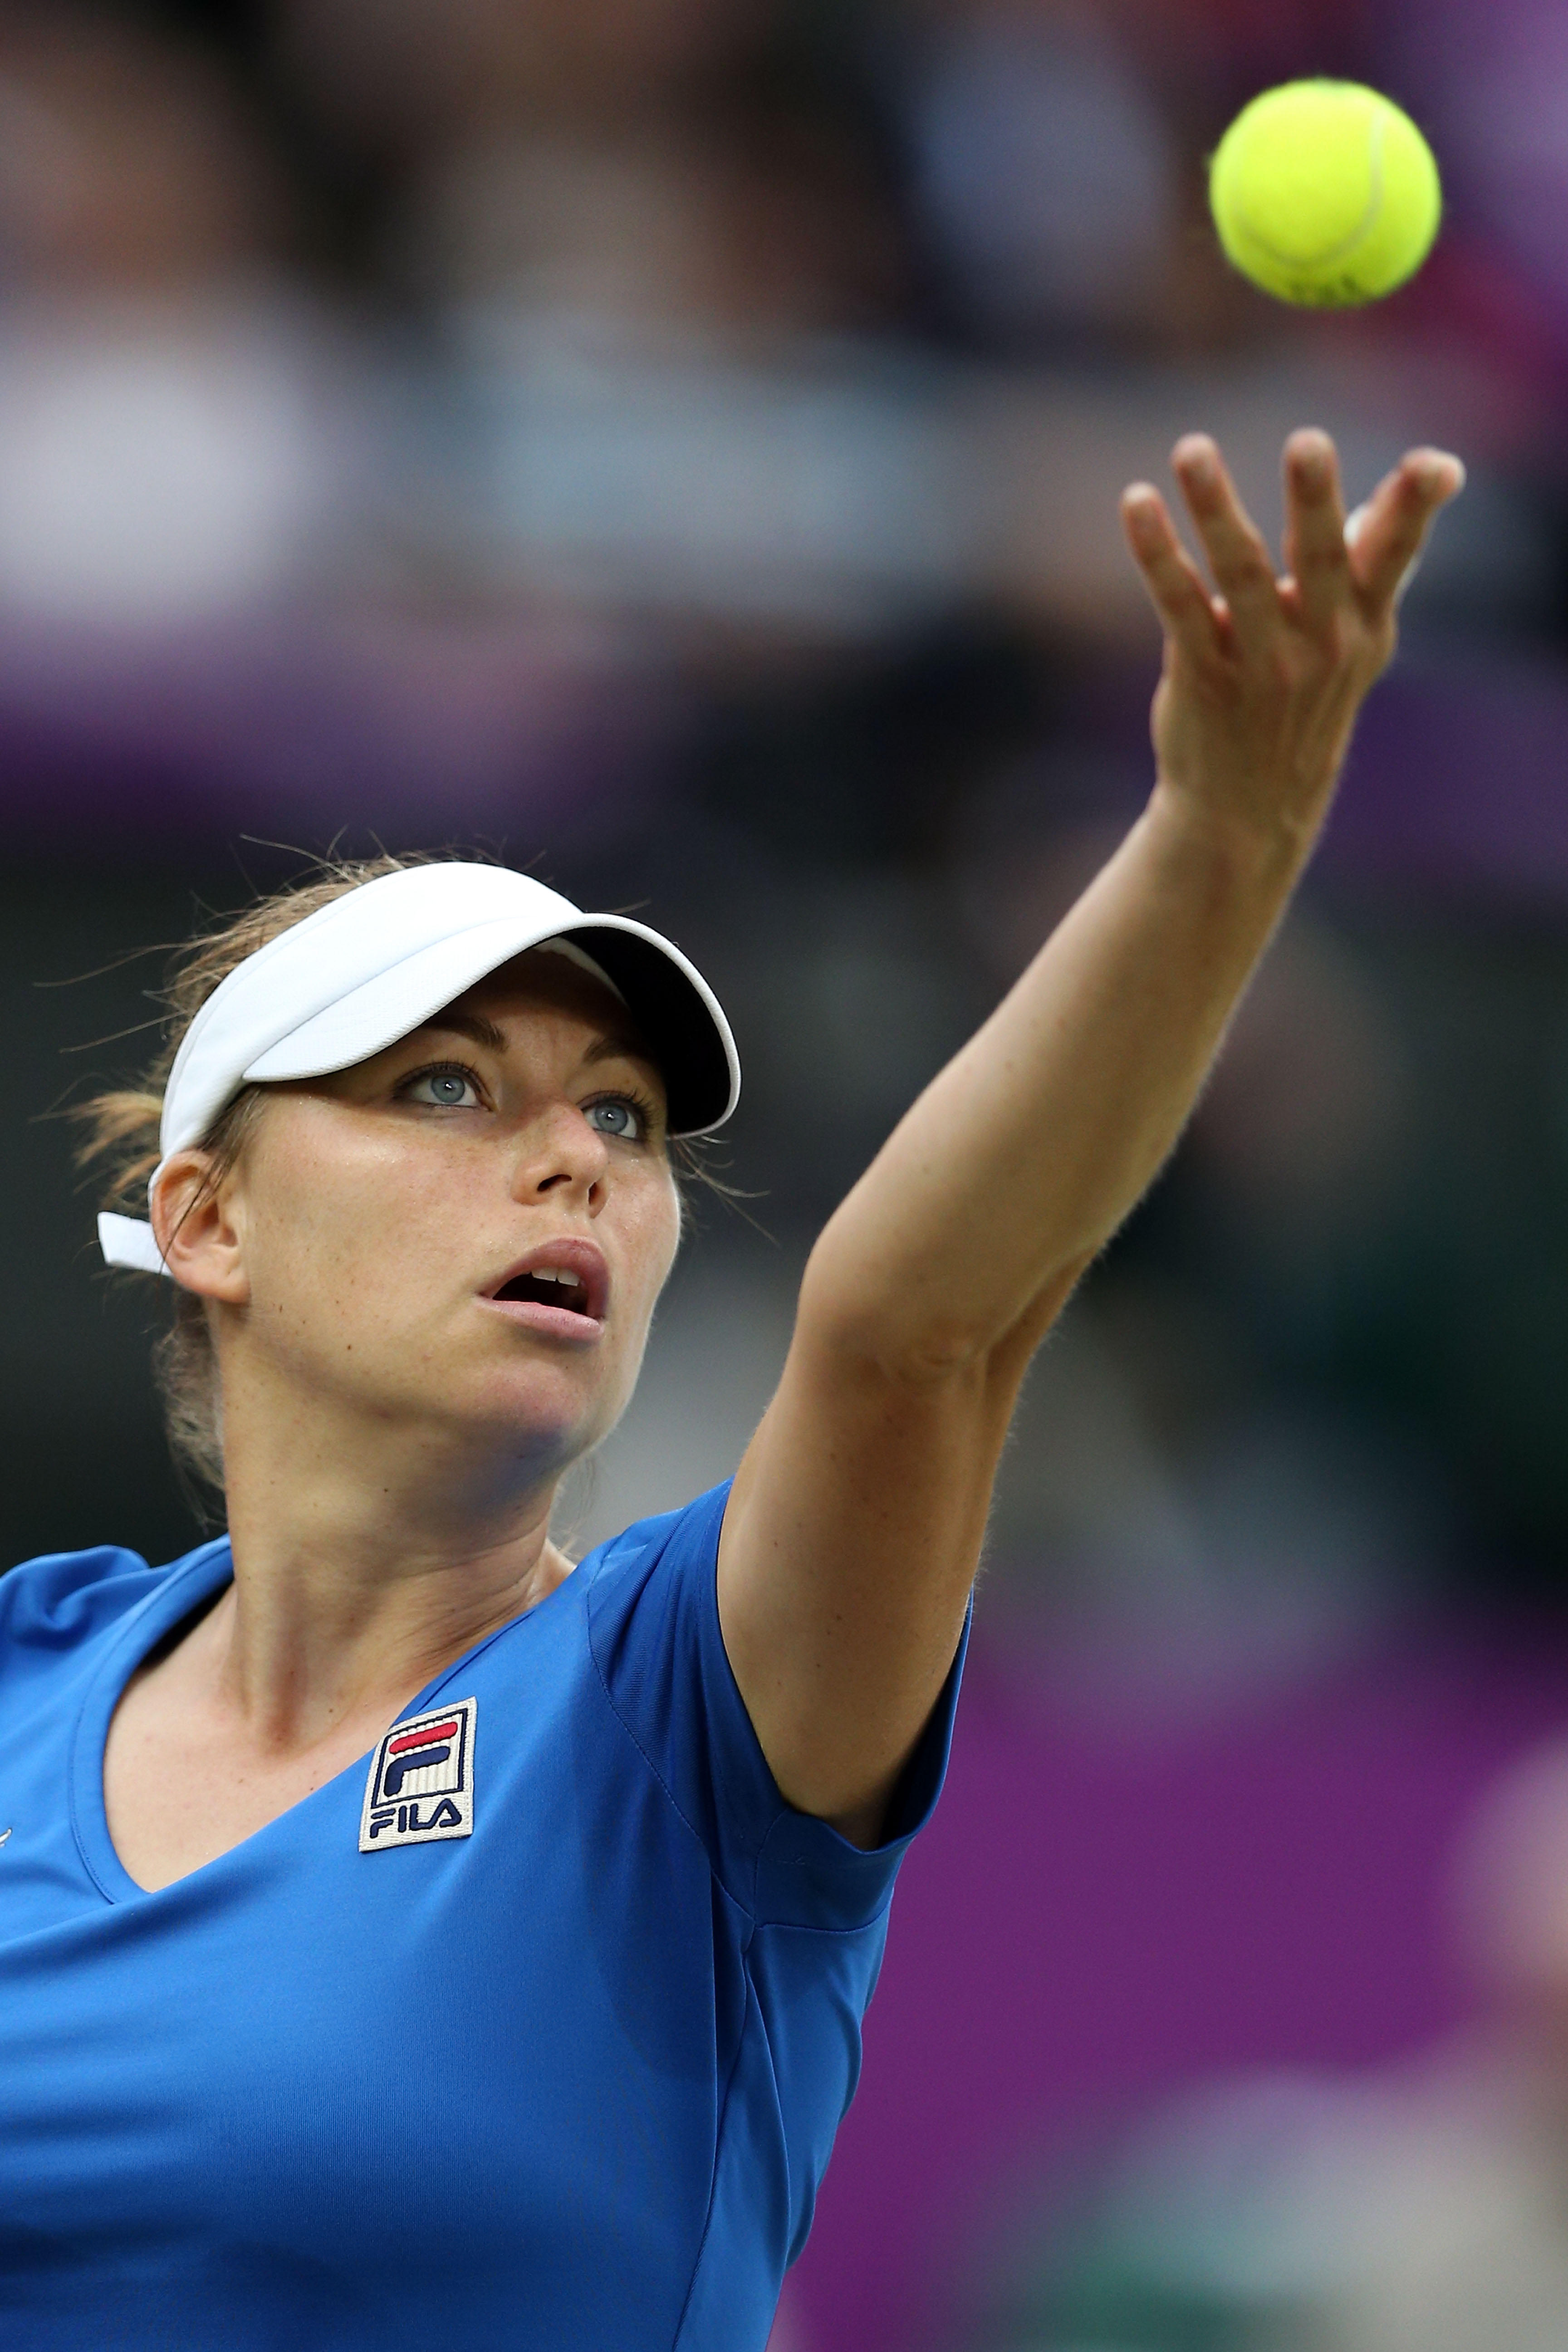 "<b>Vera Zvonareva</b> Brutally honest, Vera Zvonareva's personal website describes the ""row of failures"" that knocked her out of the top 10 to a lowly ranking of 42nd in 2005. By 2010, however, the 26-year-old had gone on to reach the finals of the U.S. Open and Wimbledon and had risen to No. 2 in the world — all while pursuing a degree in international economic relations in Moscow."